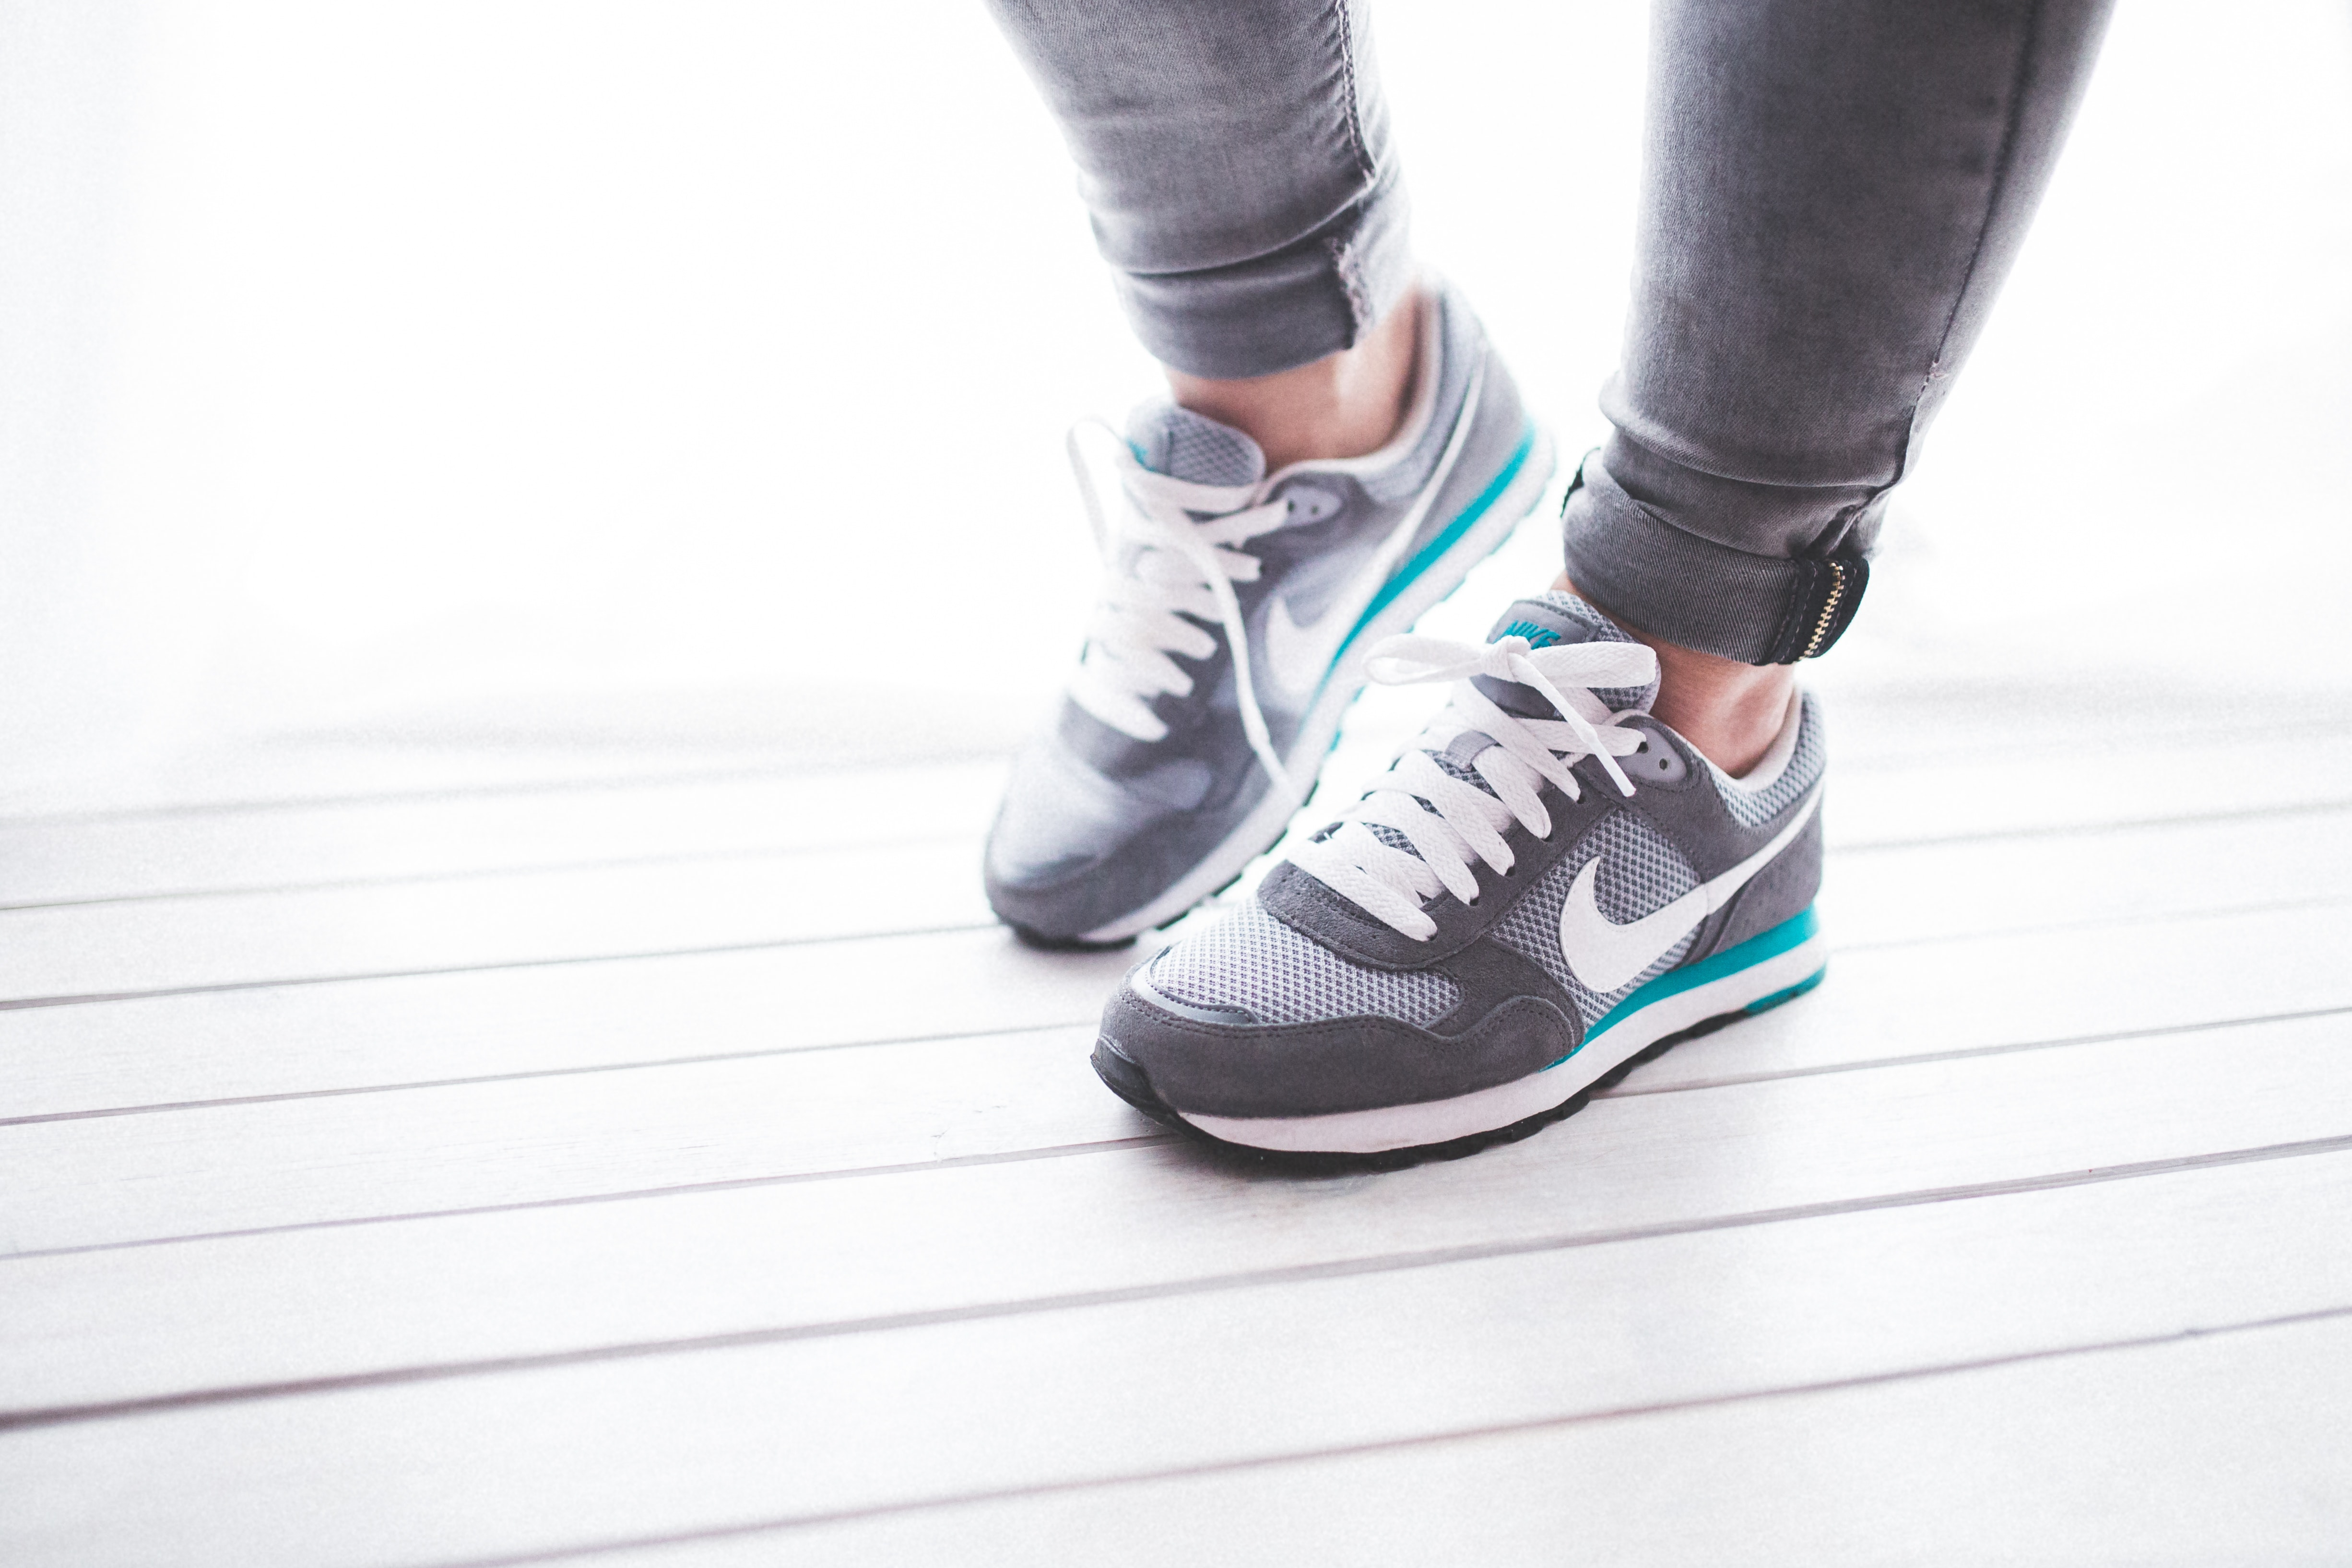 Close-up of a woman's sport shoes, Exercise, Fitness, Jogging, Nike, HQ Photo